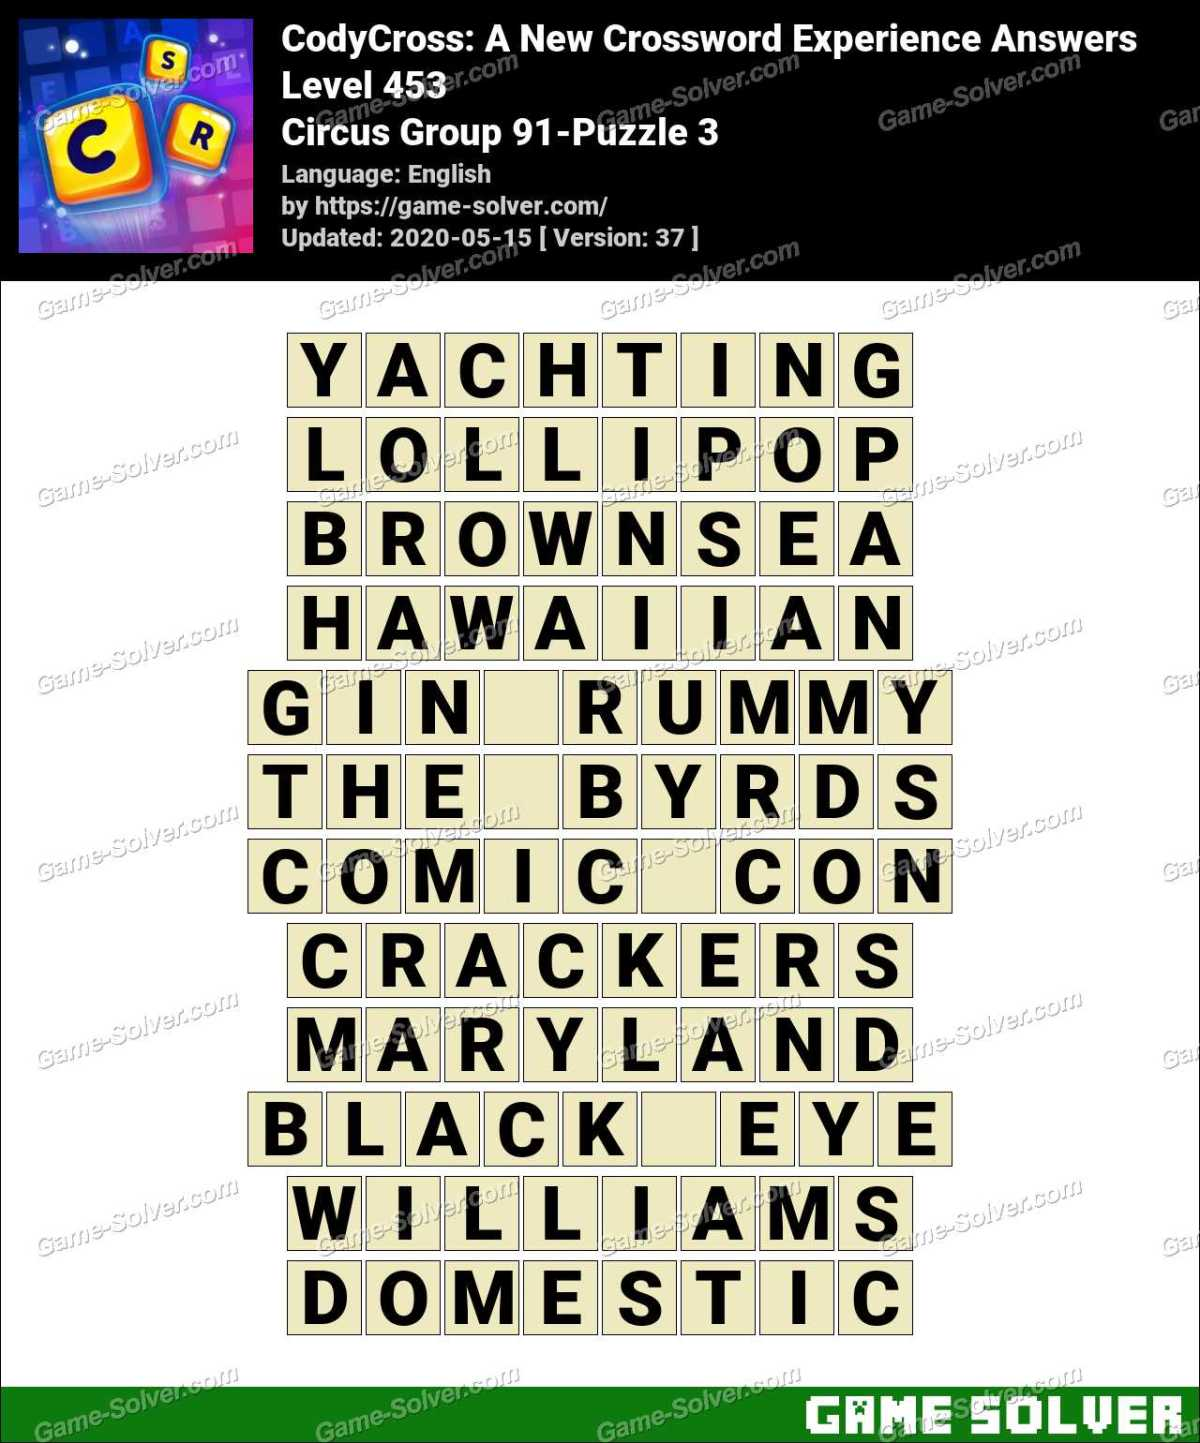 CodyCross Circus Group 91-Puzzle 3 Answers